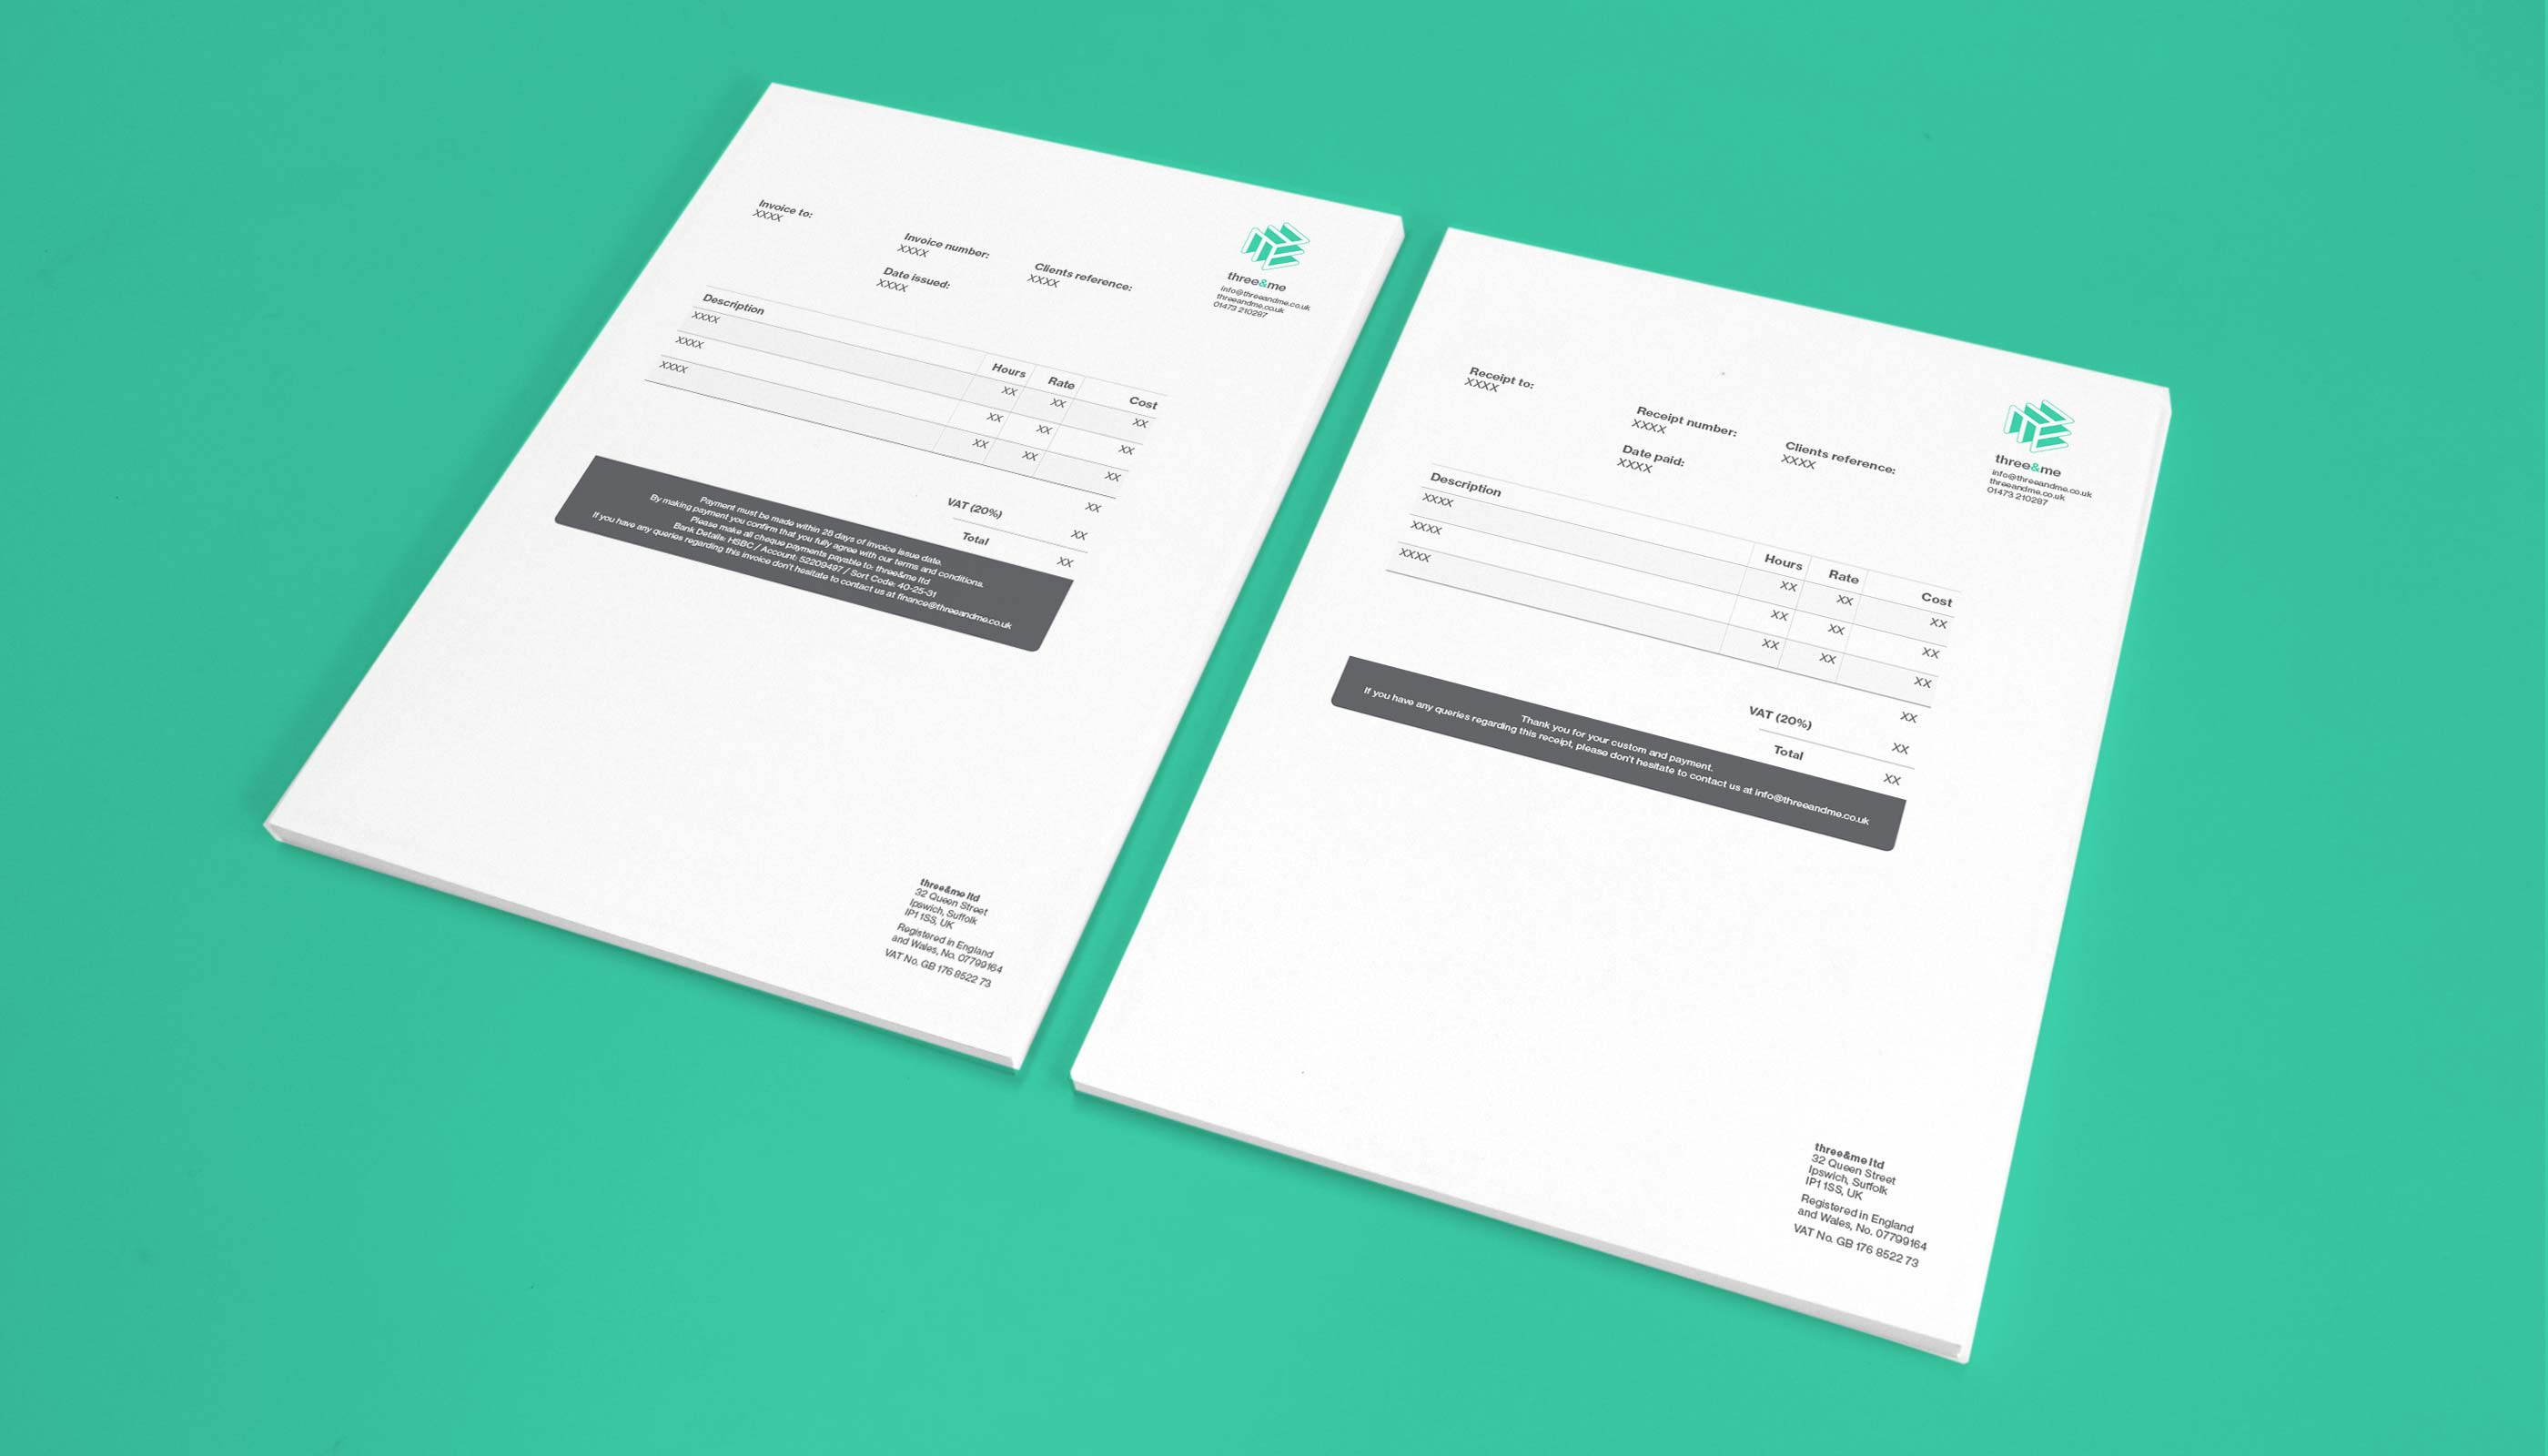 branding advertising for three me graphic design agency invoice and receipt design for three me graphic design agency in ipswich suffolk